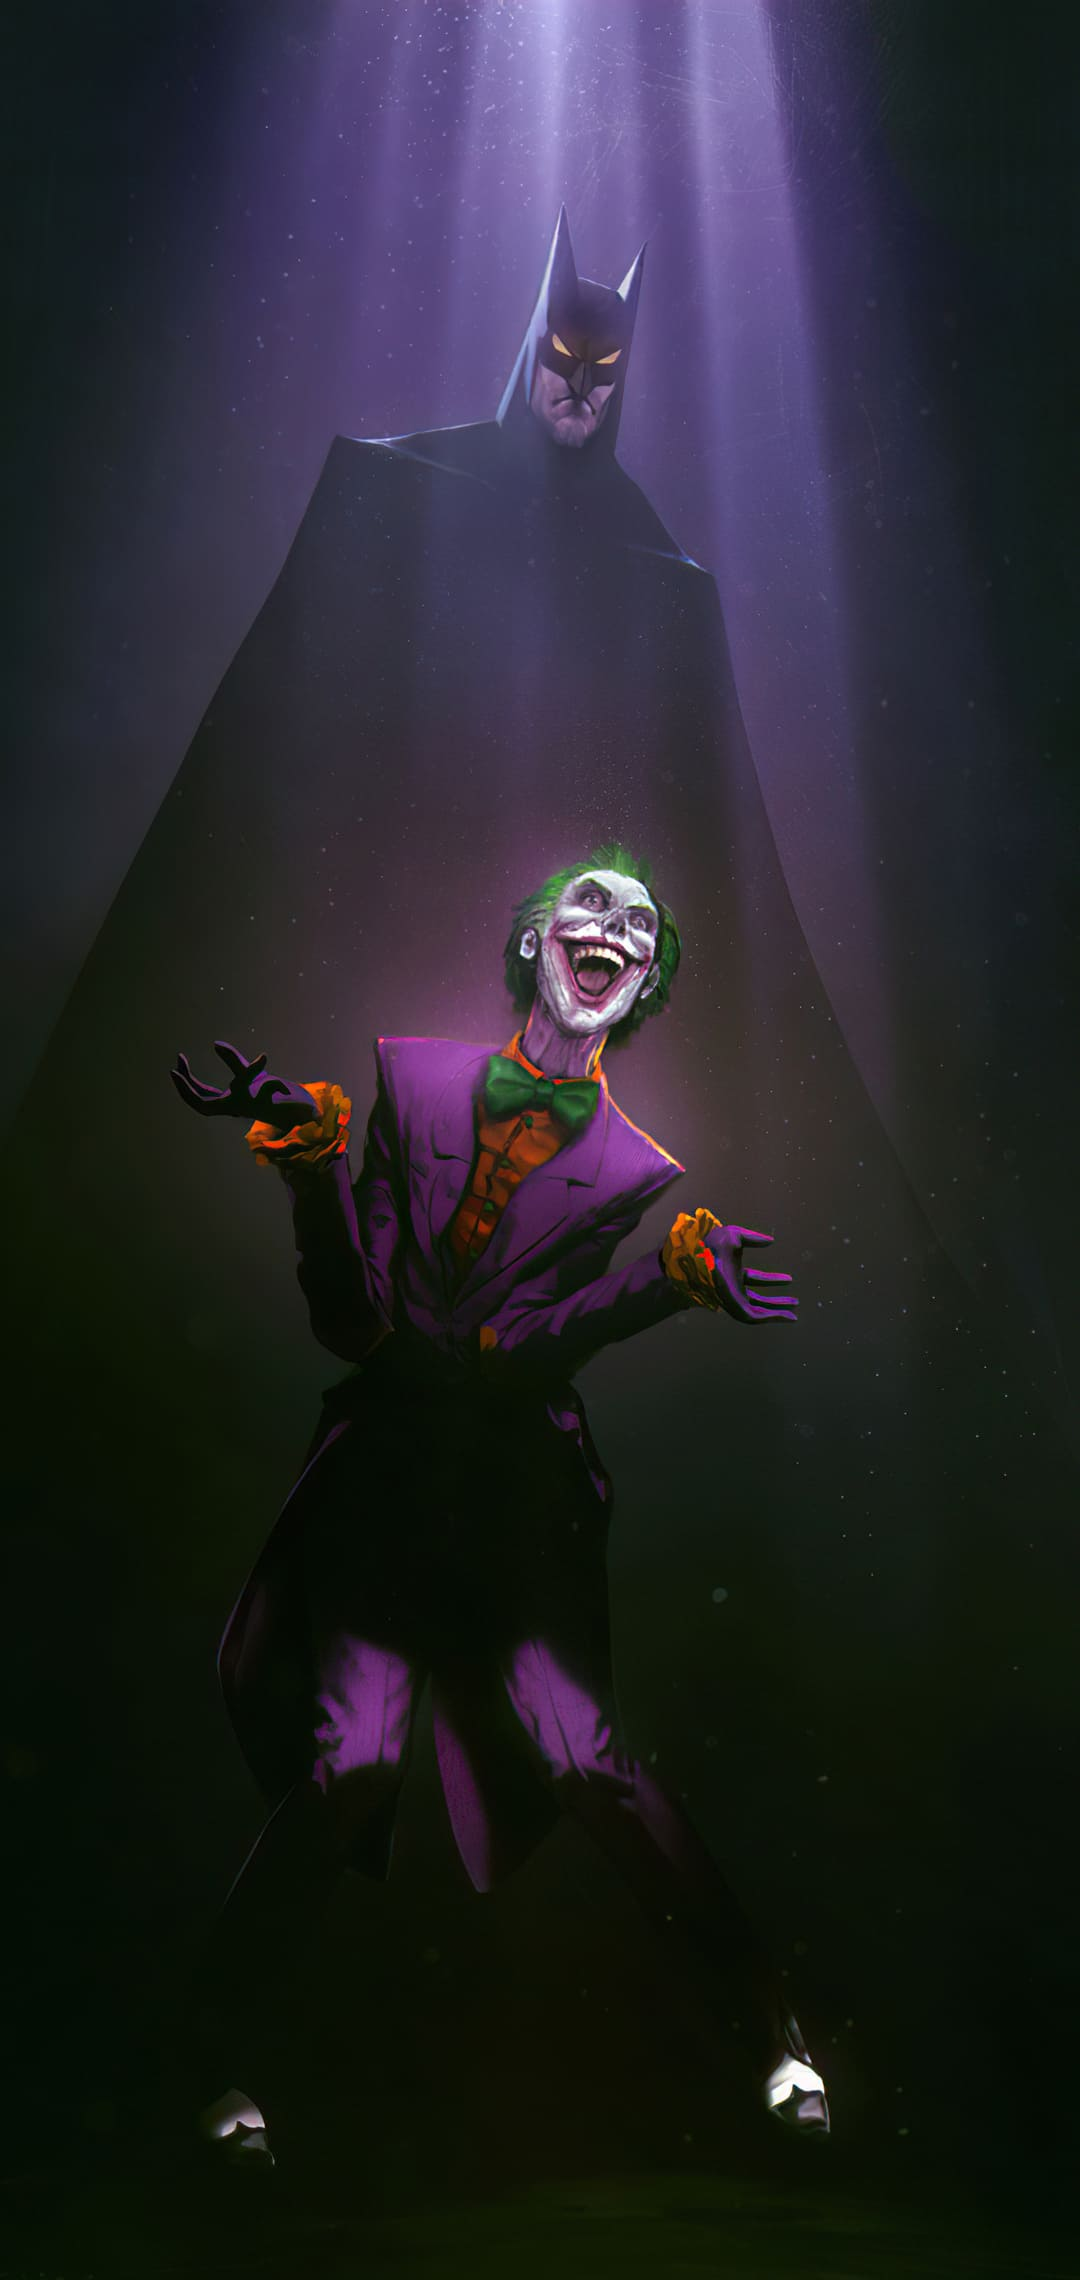 joker android background